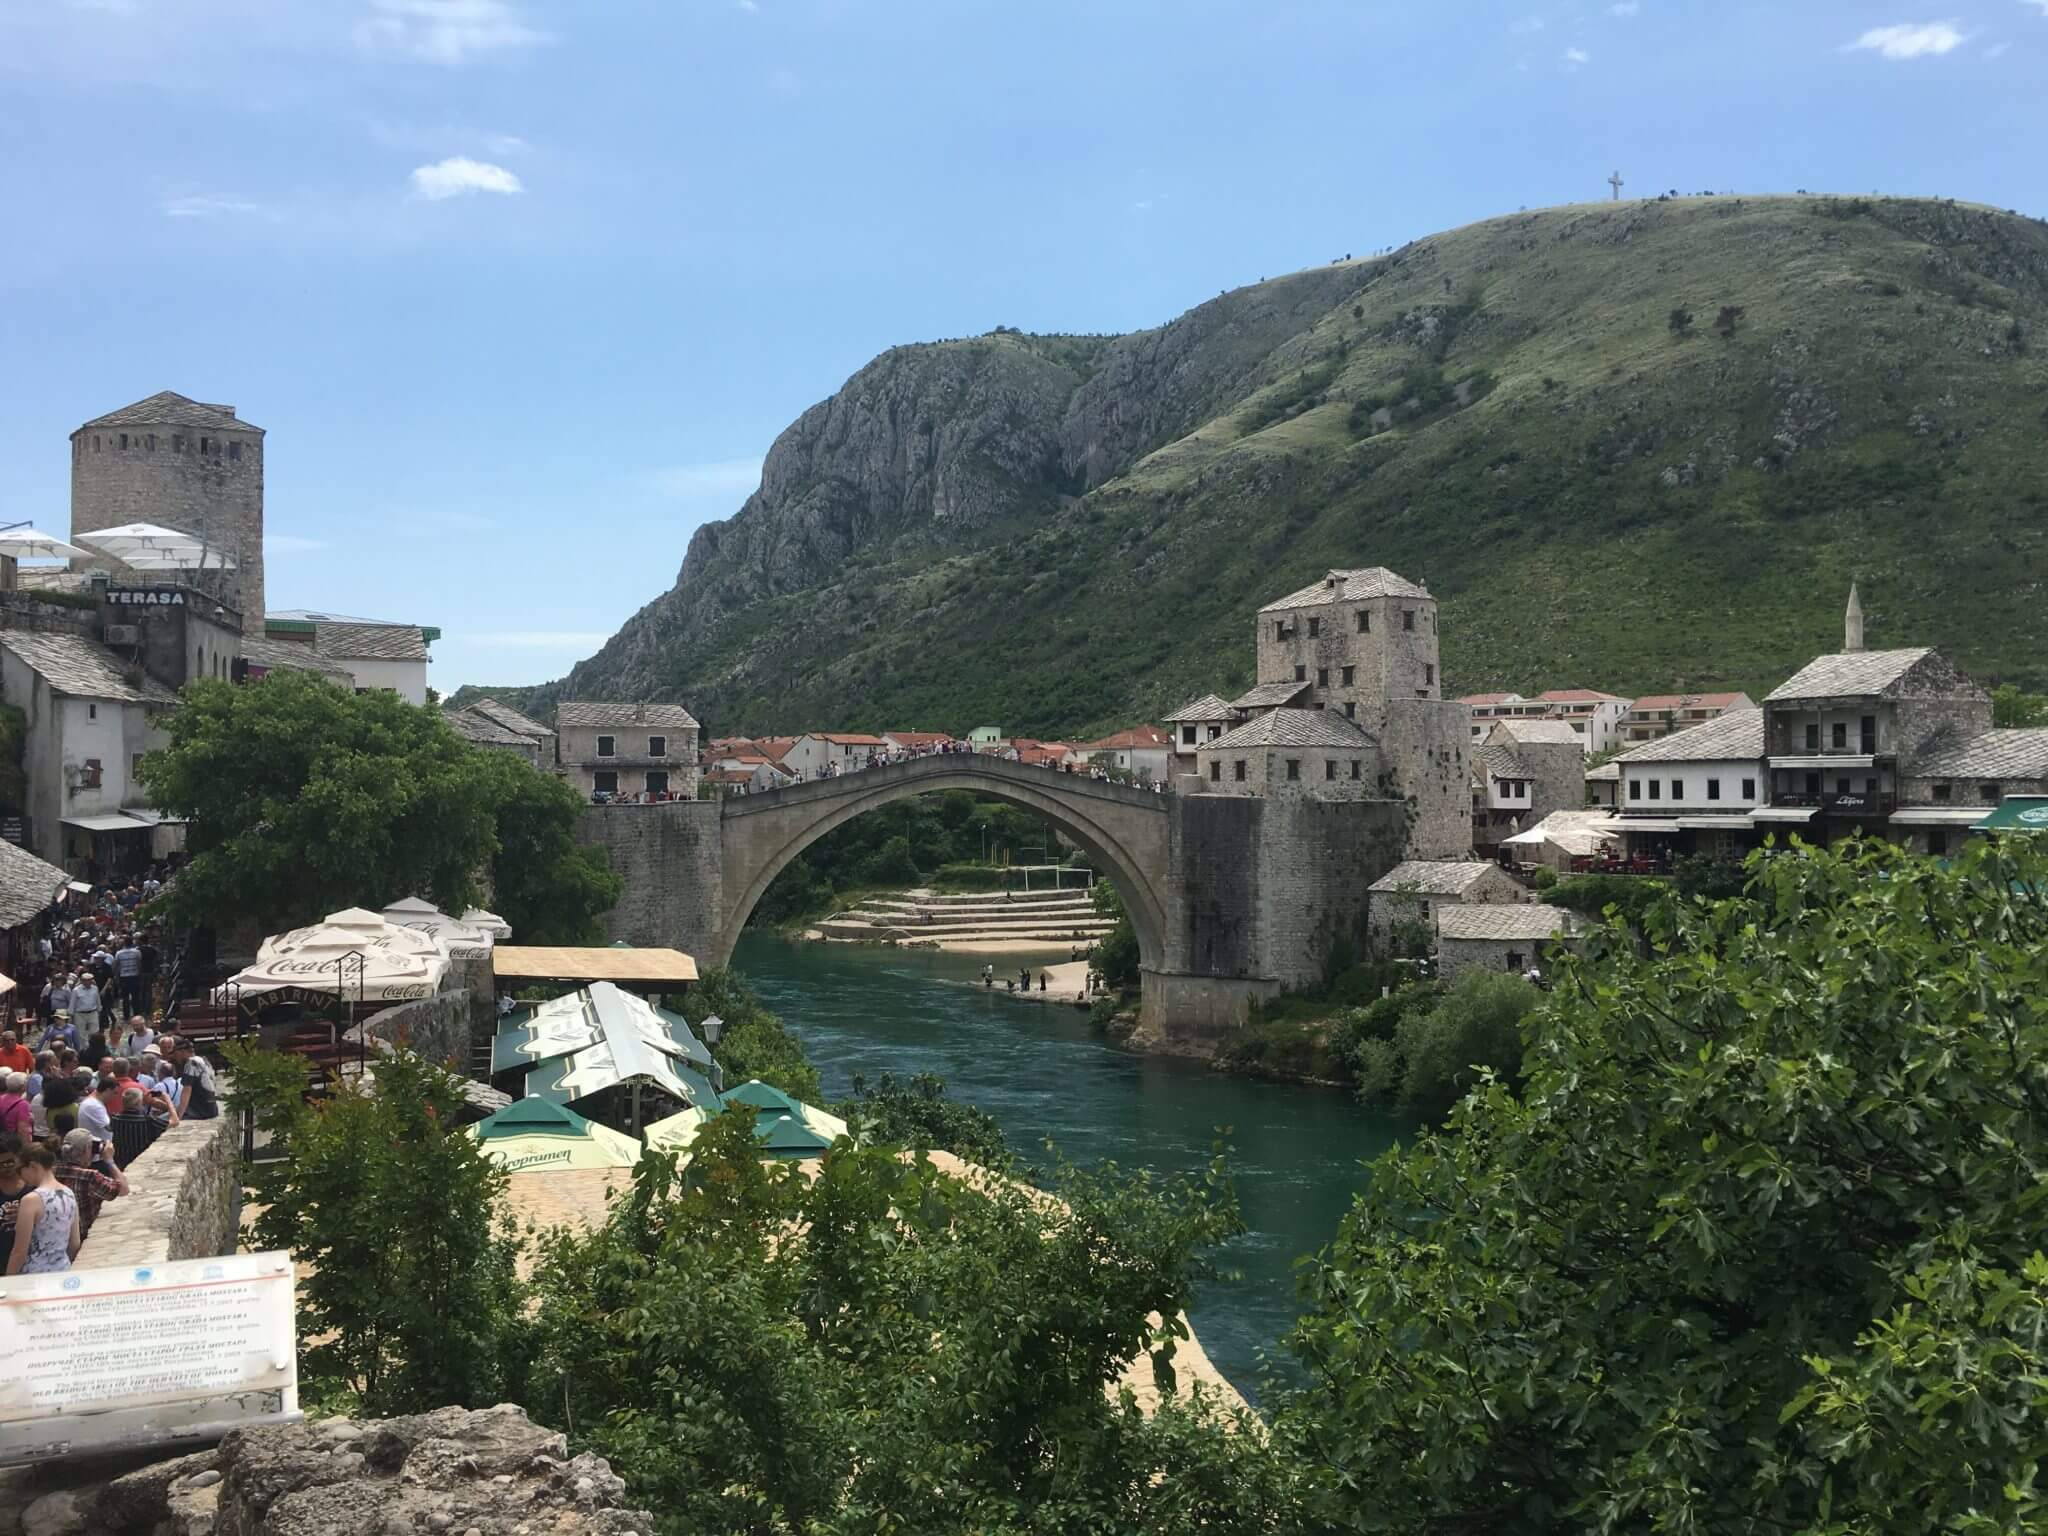 Mostar, Stari Most Bridge, Old Bridge, Neretva River